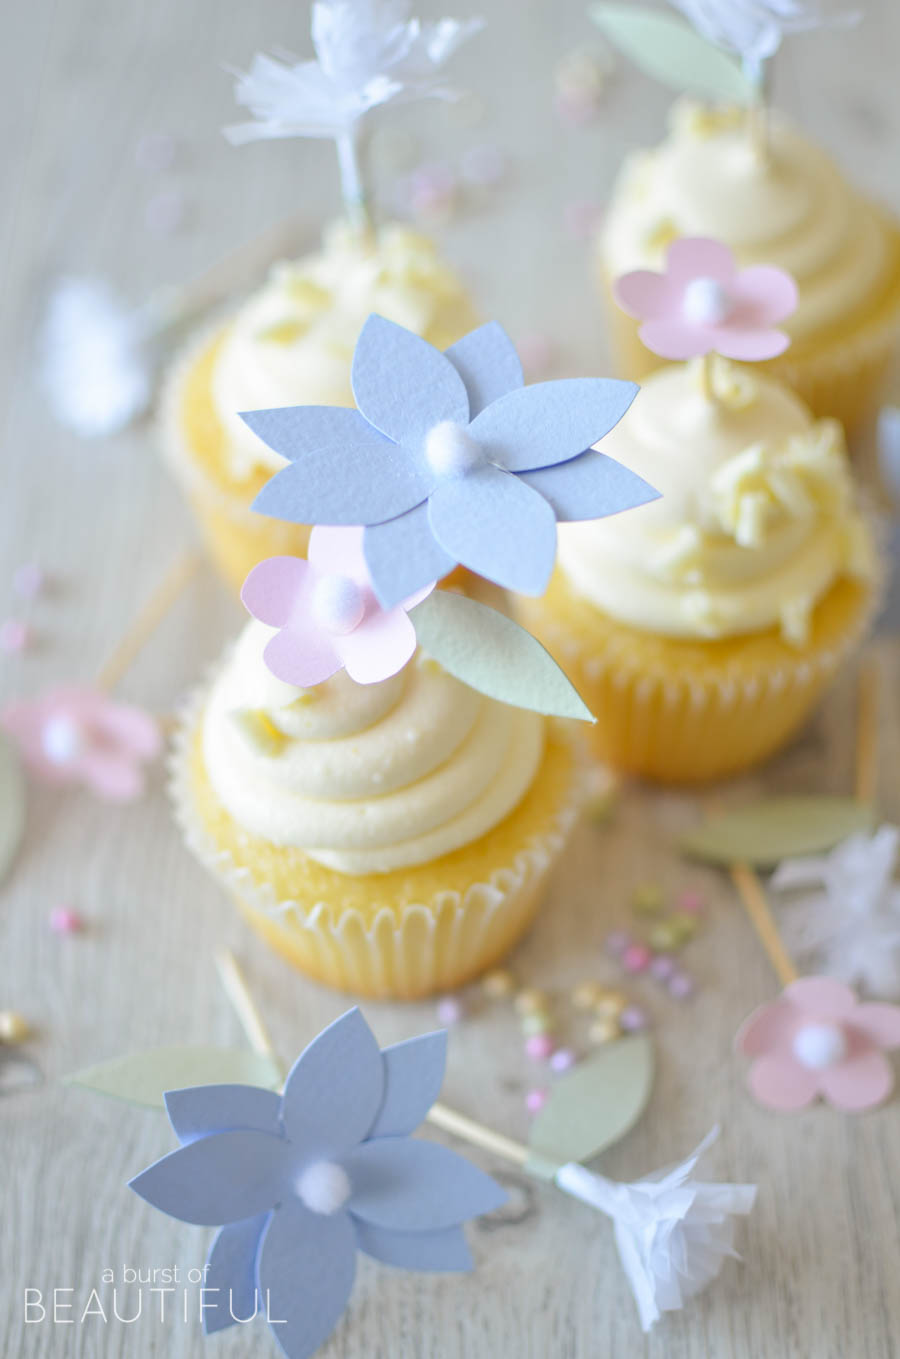 Add a whimsical touch to your next special even with these pretty DIY floral cupcake toppers | A Burst of Beautiful